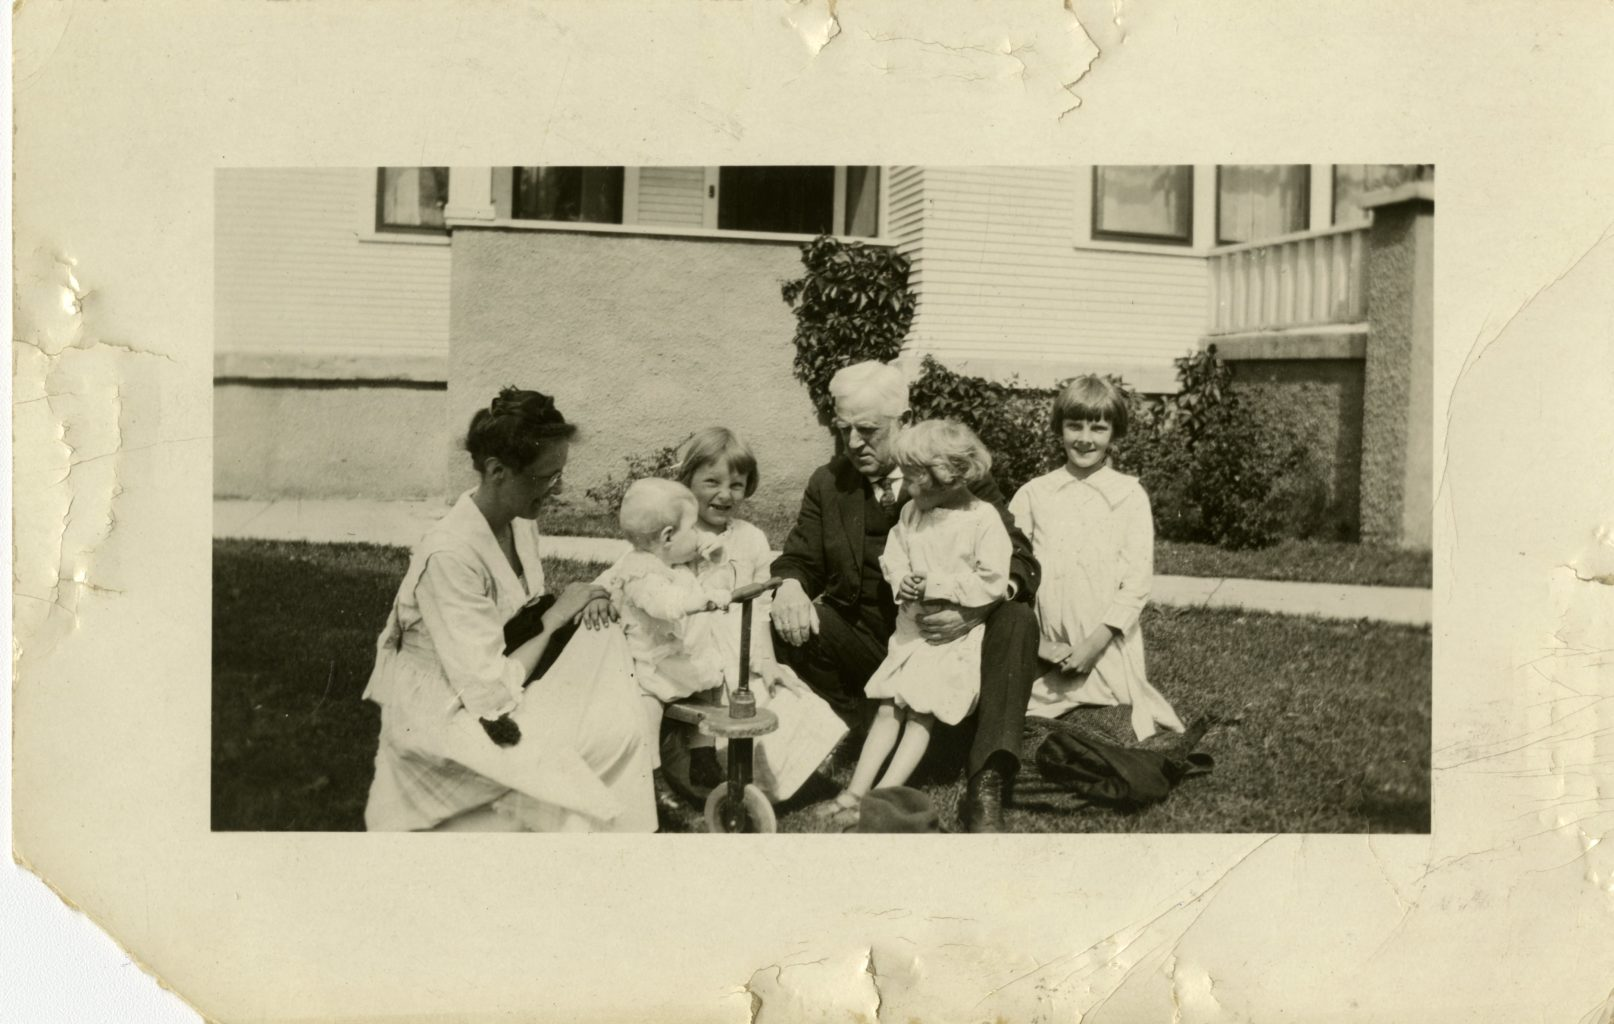 Preus family gathers for a photo outside.